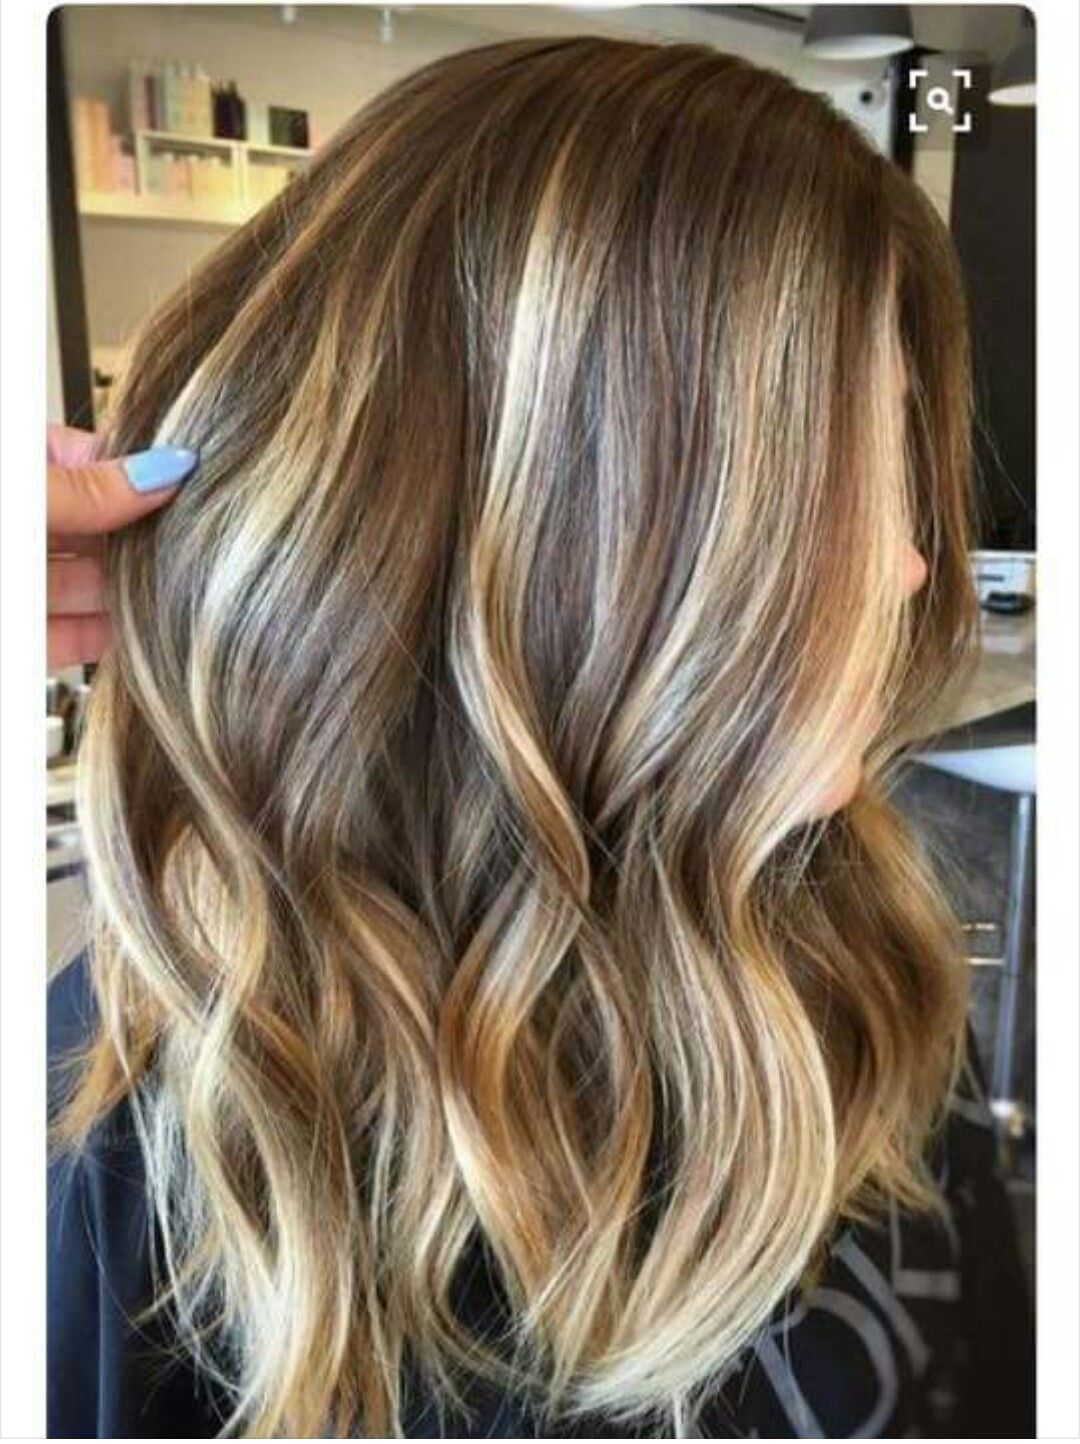 Pin by dana passananti on fashionista pinterest hair coloring